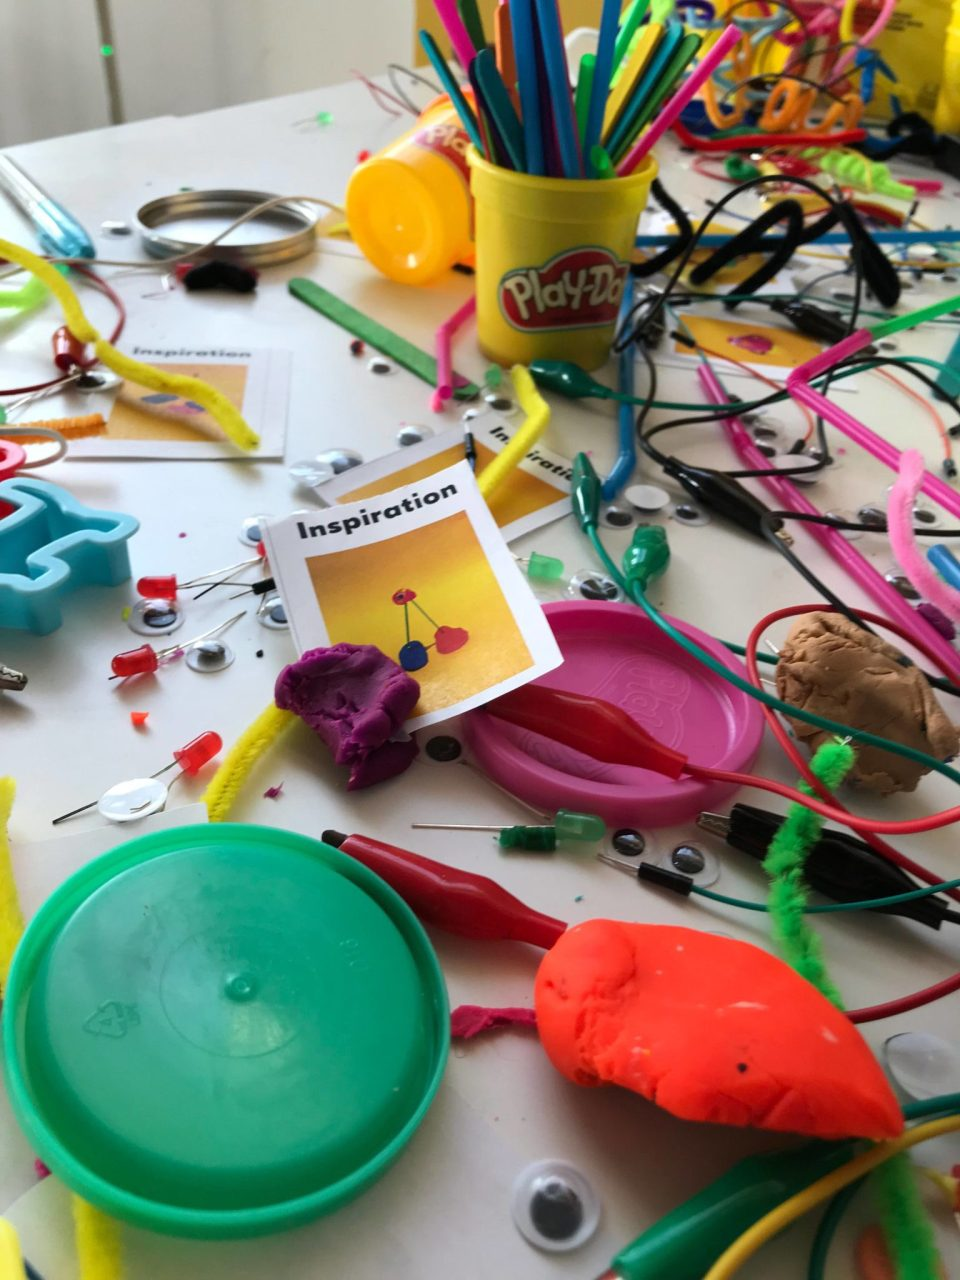 Sue's Tech Kitchen - building clay circuits